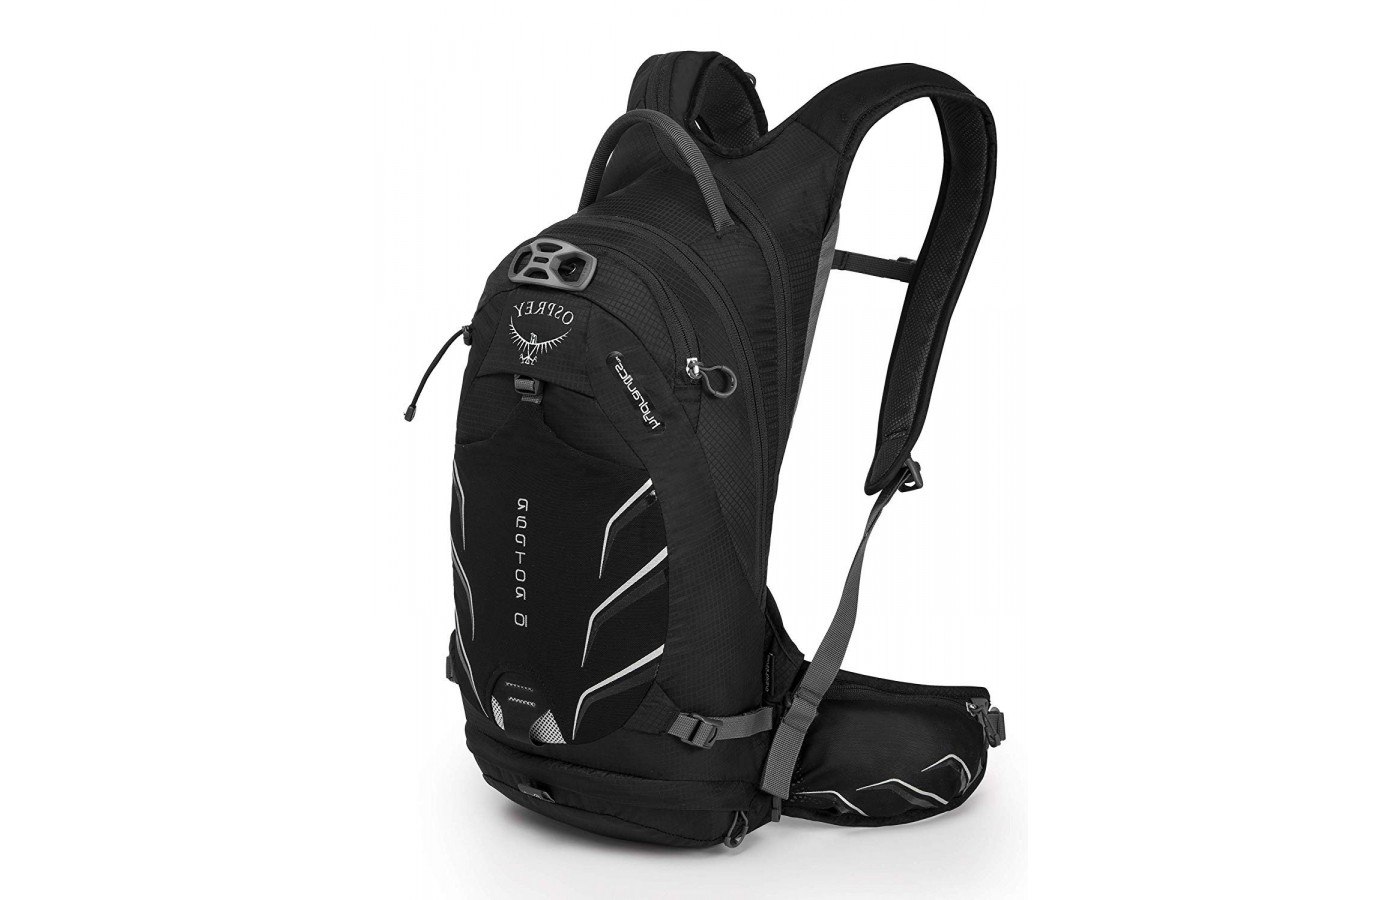 Compression straps are around the waist of this Osprey backpack.